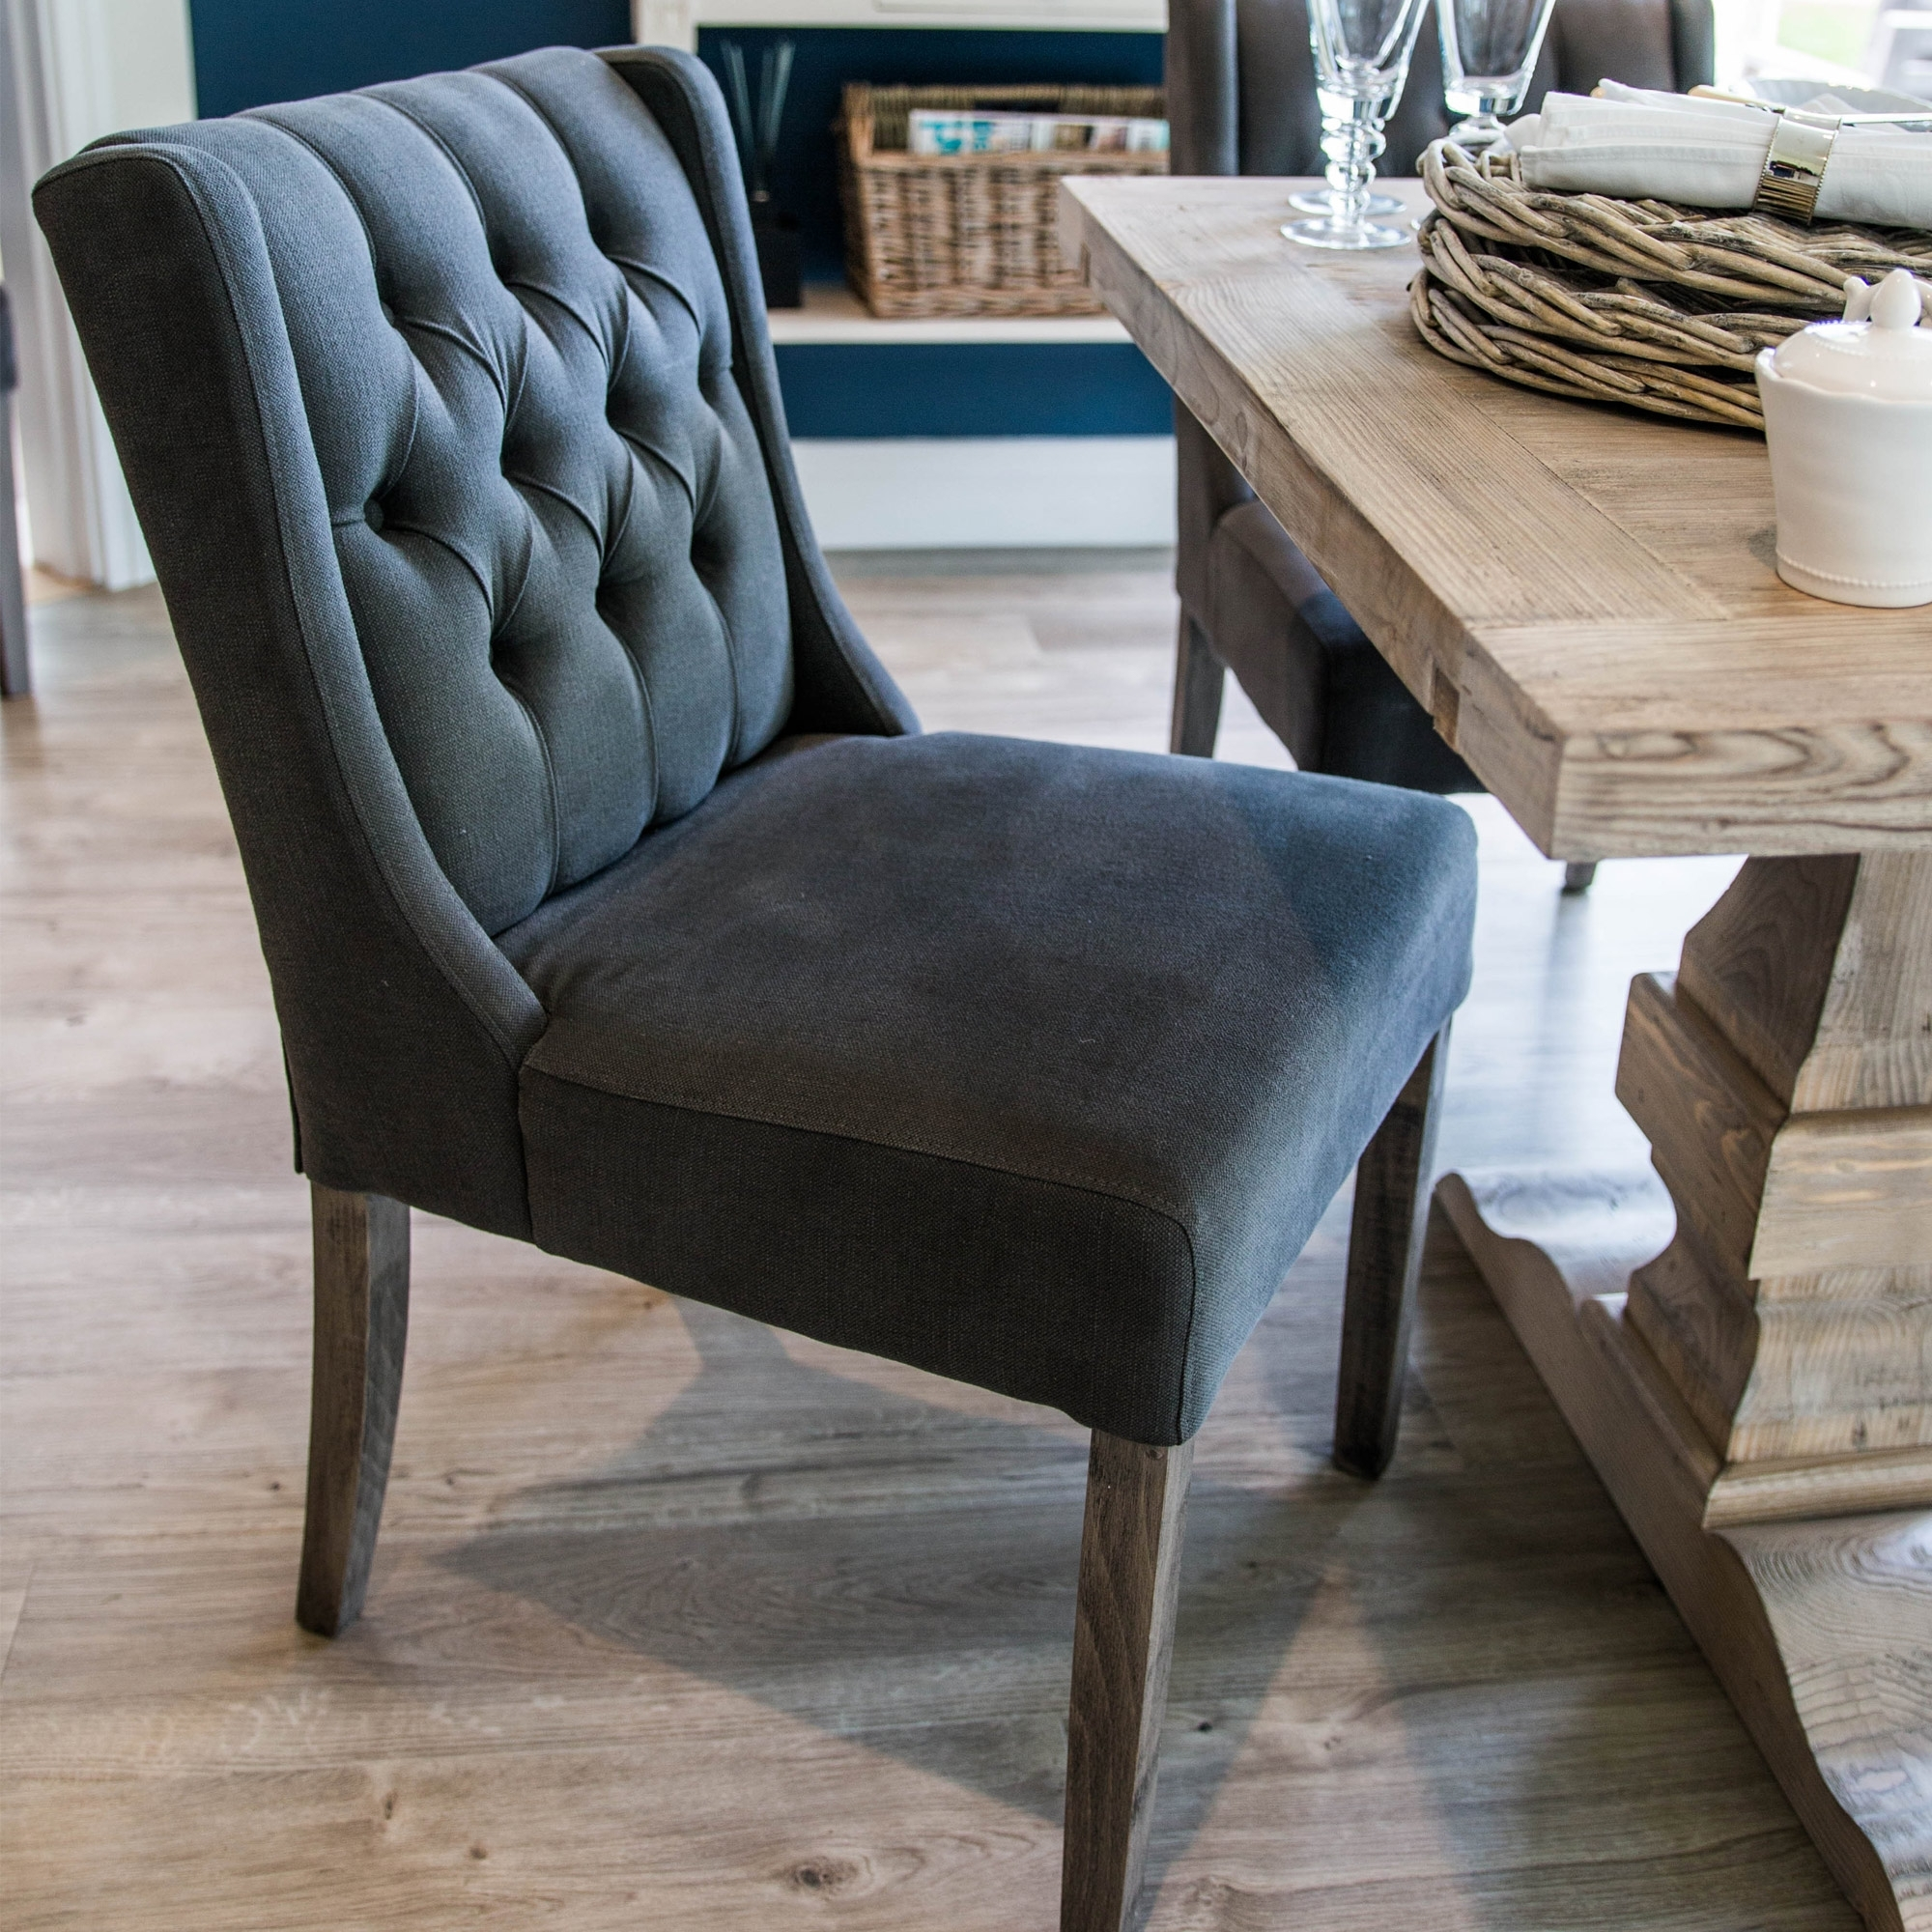 Popular French Button Backed Dining Chair (View 20 of 25)